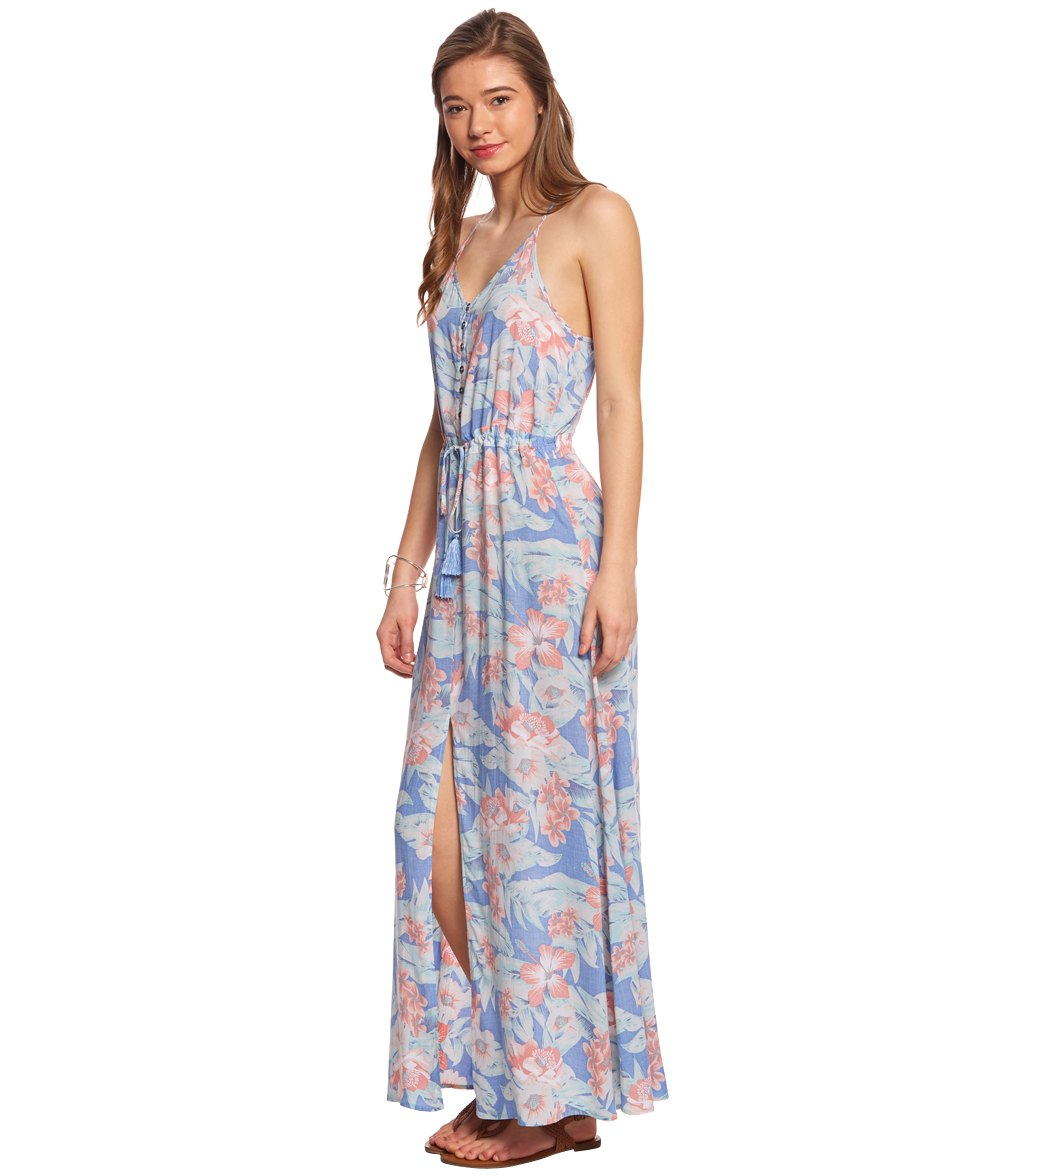 Rip Curl Mia Flores Maxi Dress at SwimOutlet.com - Free Shipping